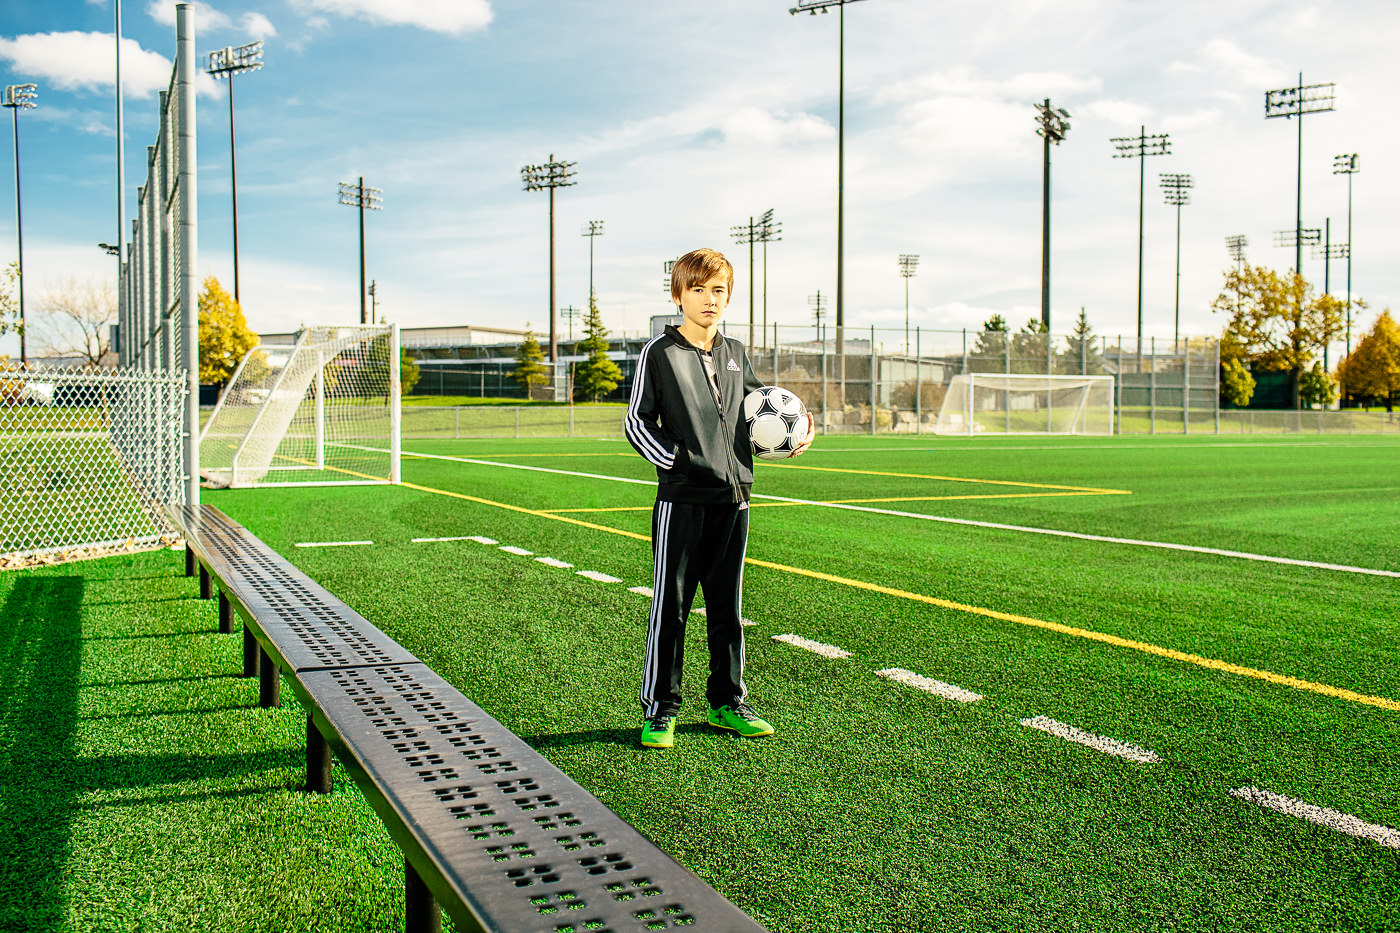 photo commerciale campagne soccer sports experts jeune joueur de soccer